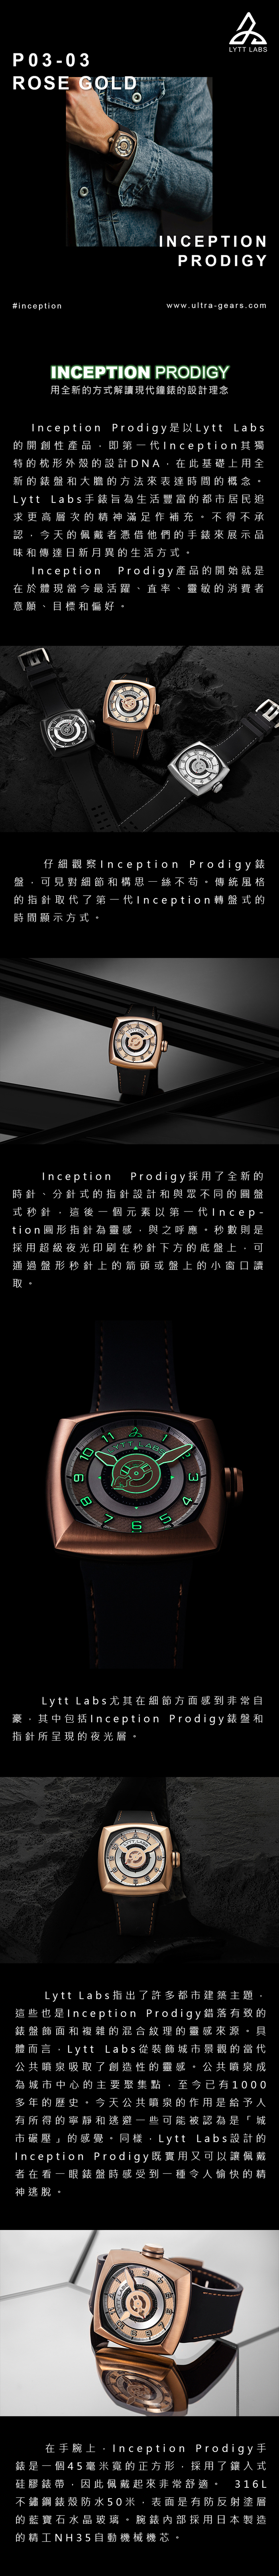 LYTT LABS | Inception Prodigy - P03-03 ROSE GOLD